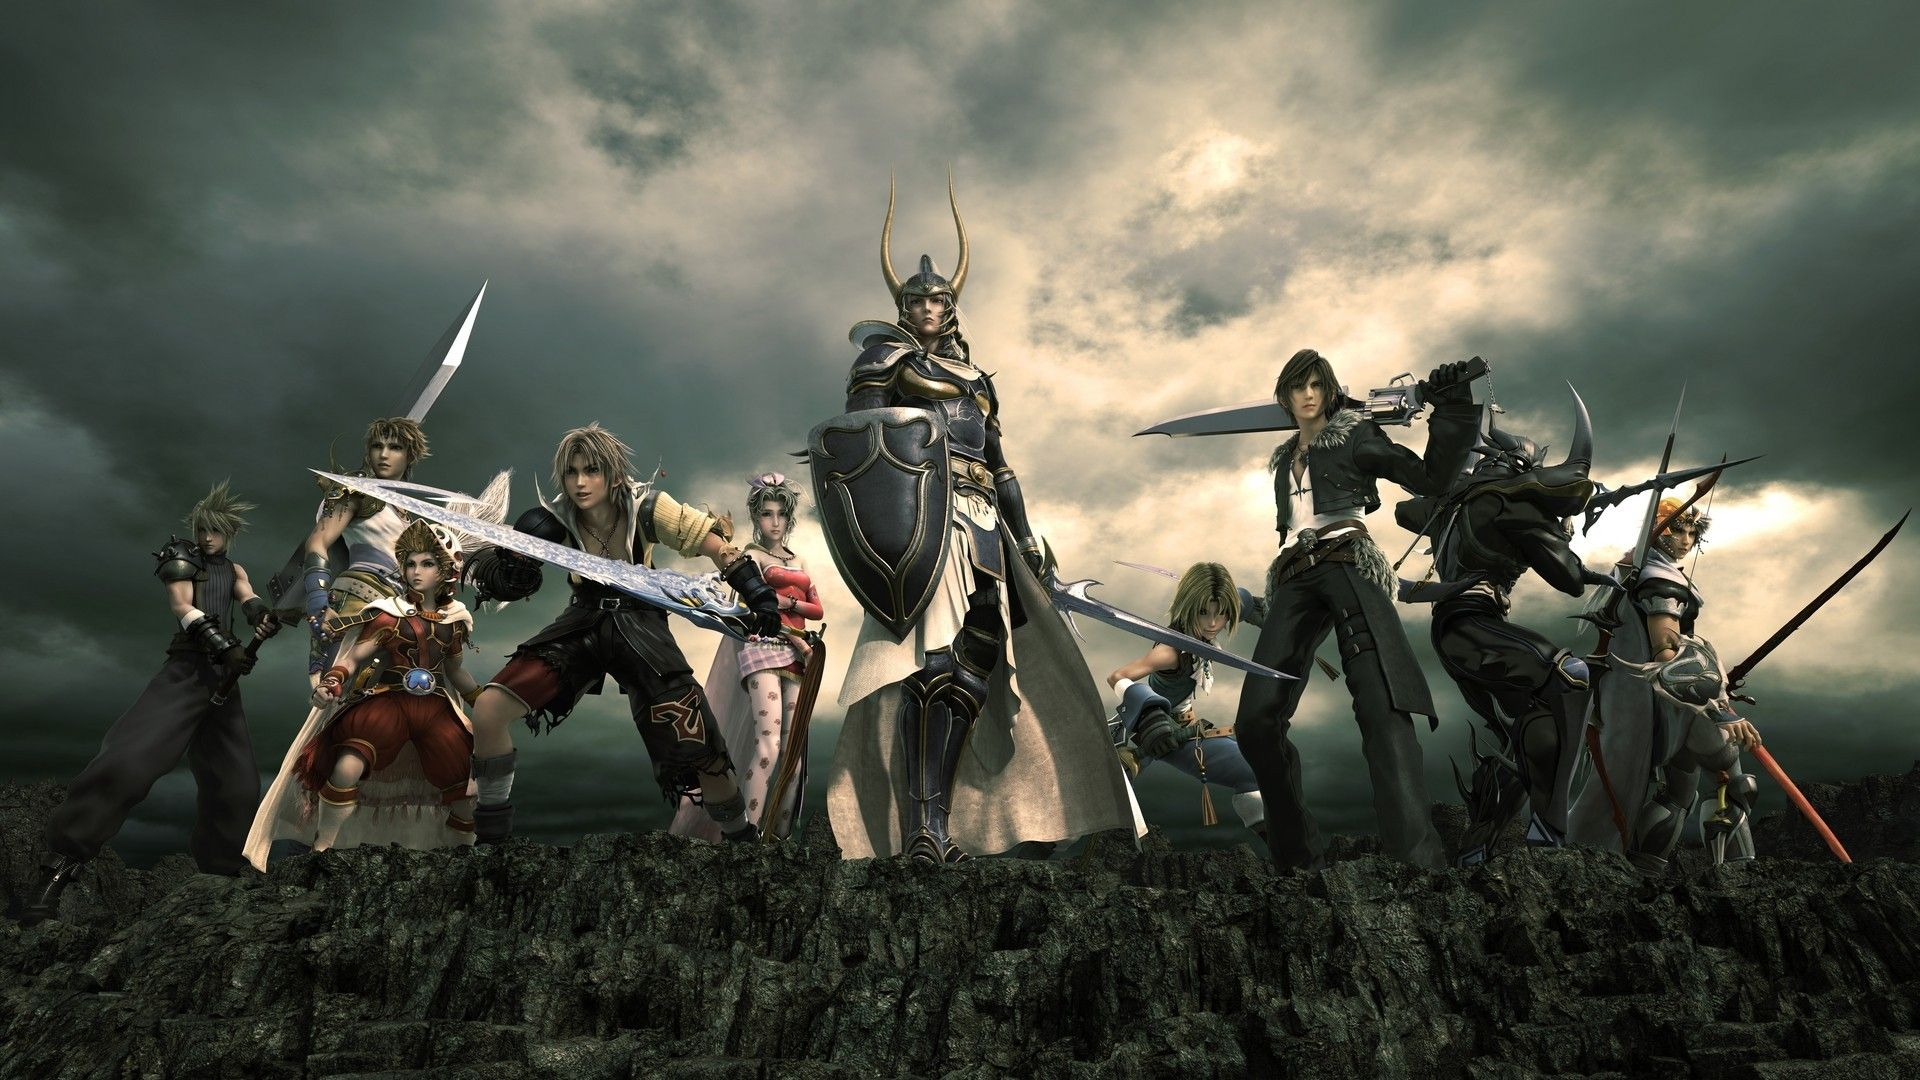 wallpaper final fantasy collection for free hd